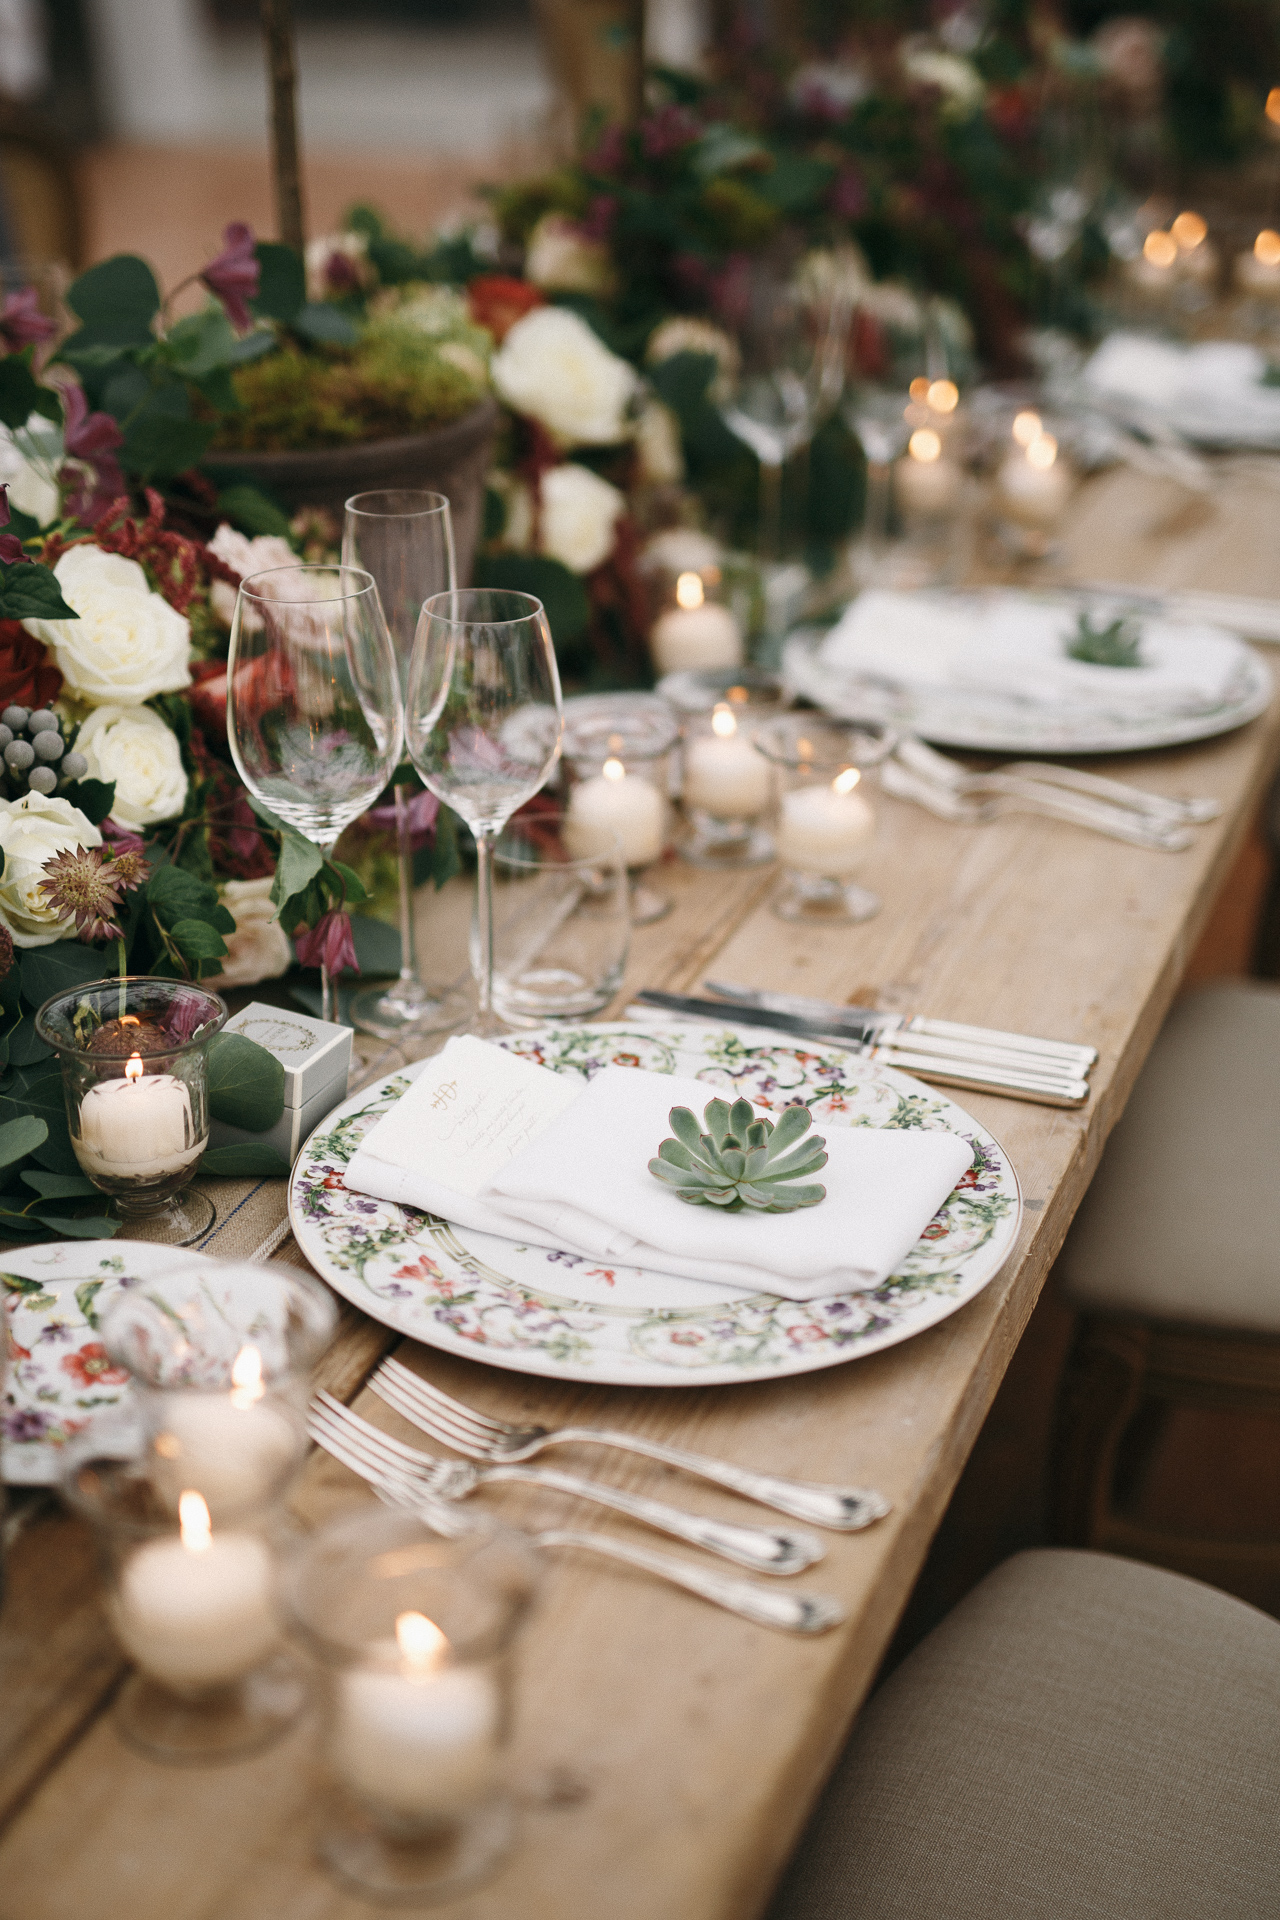 Mise En Place Design mise en place the essence of a perfect wedding - theknotinitaly